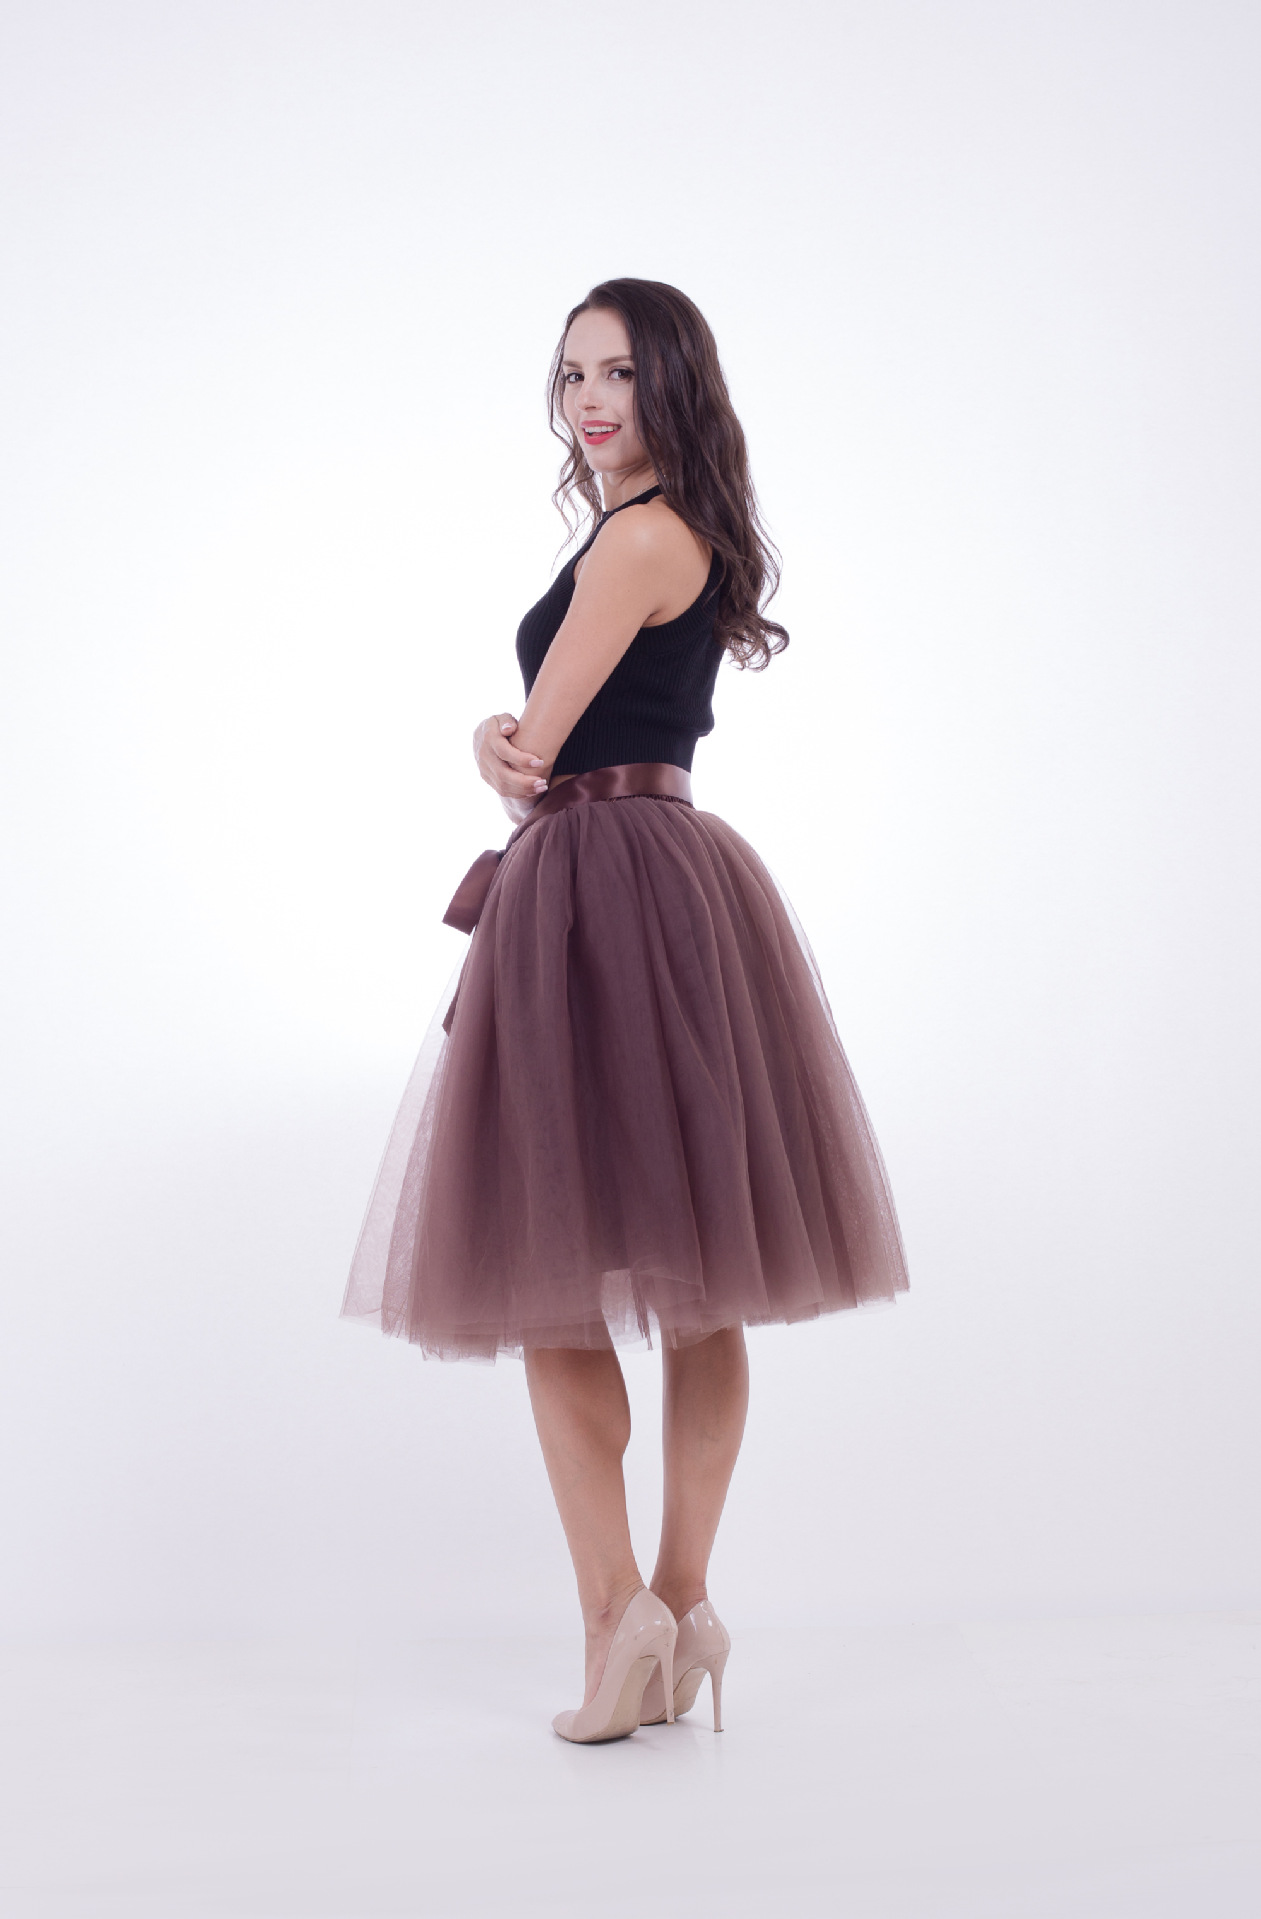 6 Layers Midi Tulle Skirts Womens Tutu Skirt Elegant Wedding Bridal Bridesmaid Skirt Lolita Underskirt Petticoat coffee